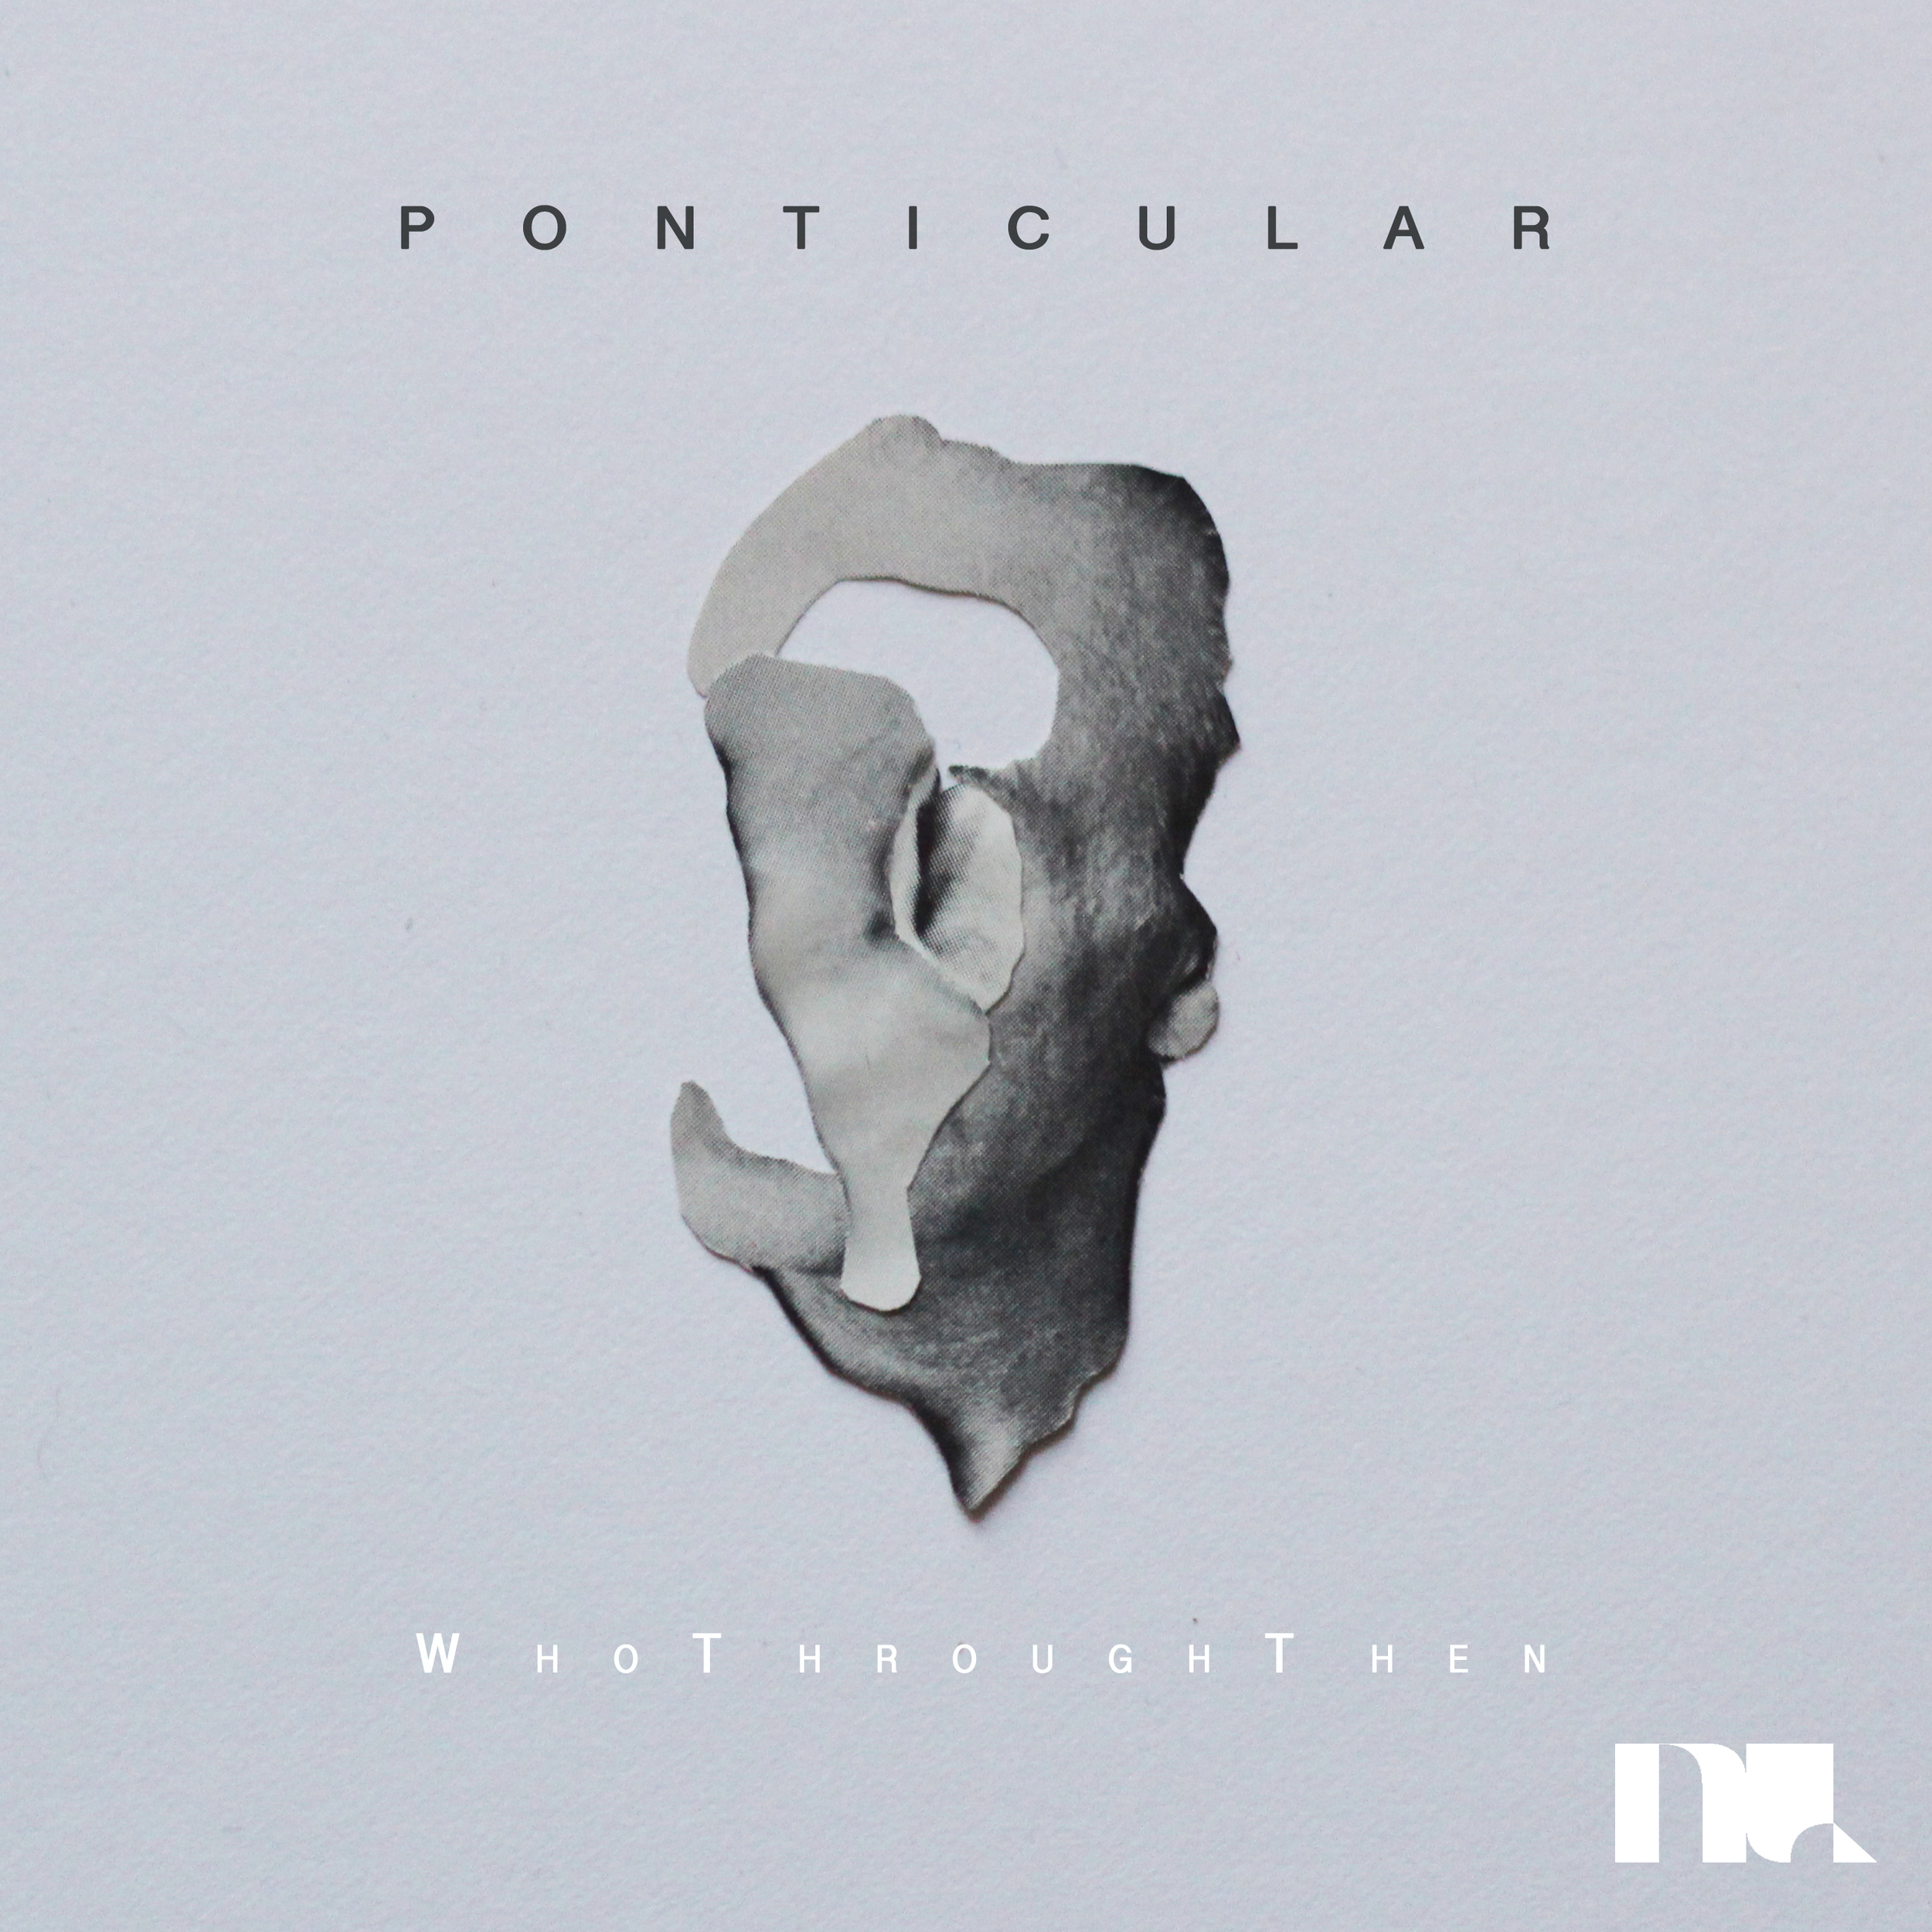 Whothroughthen - Ponticular